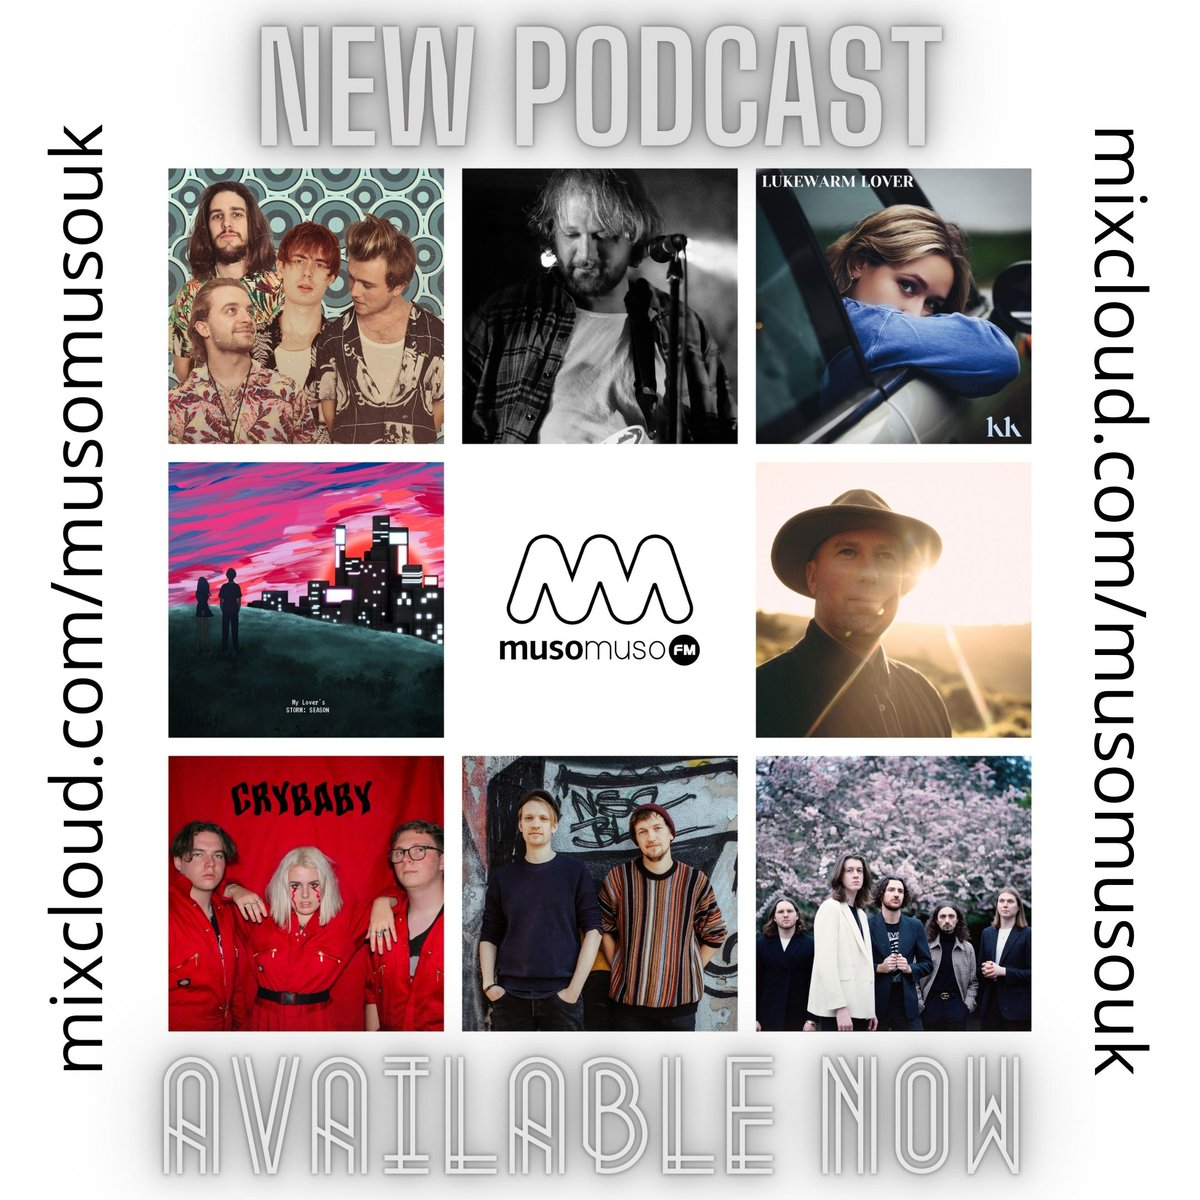 This week's #musomusofm new music podcast is available to stream at   @chaysnowdon  Robin Hann @kkittermaster  @STORM_CZN  @PostMalone  @ArcticMonkeys  @BlossomsBand  @daviefurey  @wearetashuk   PLEASE RETWEET  #podcast #NewMusic #musicblog #introducing